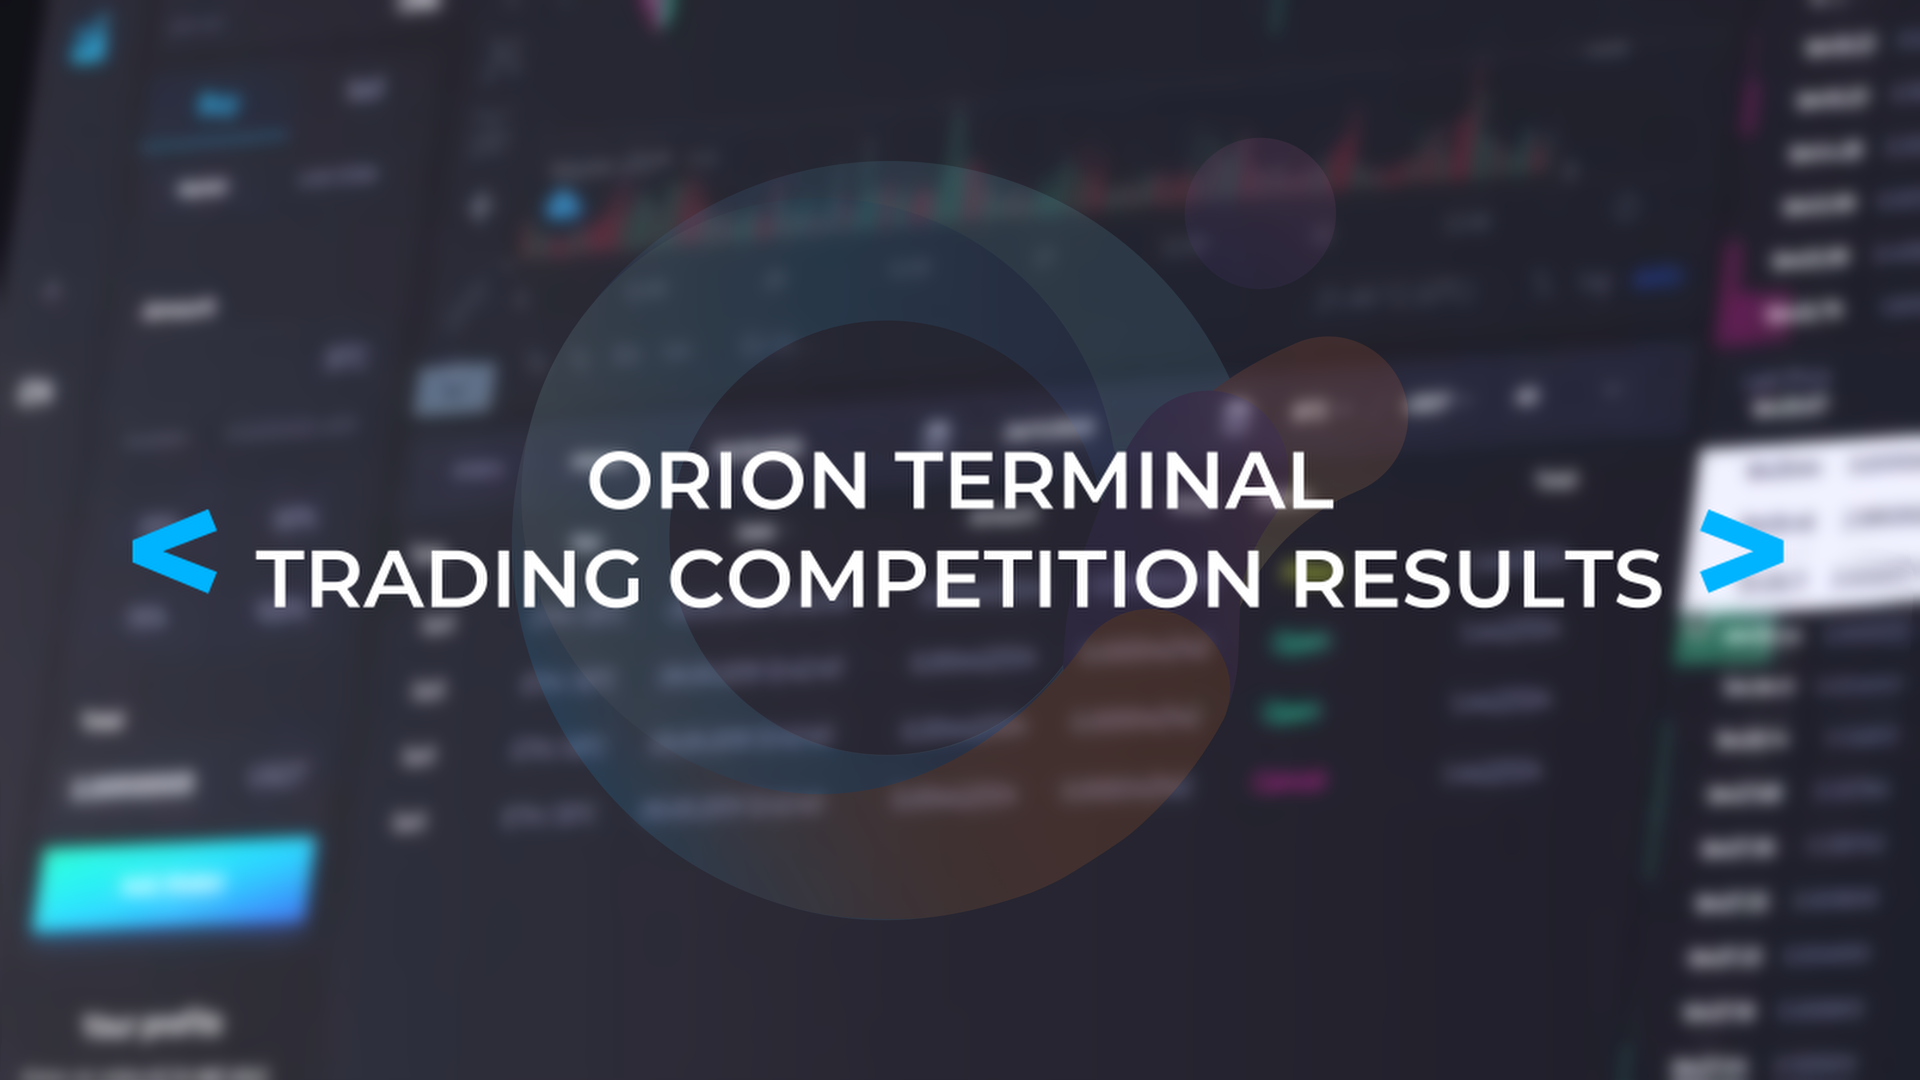 Orion Terminal Trading Competition Results